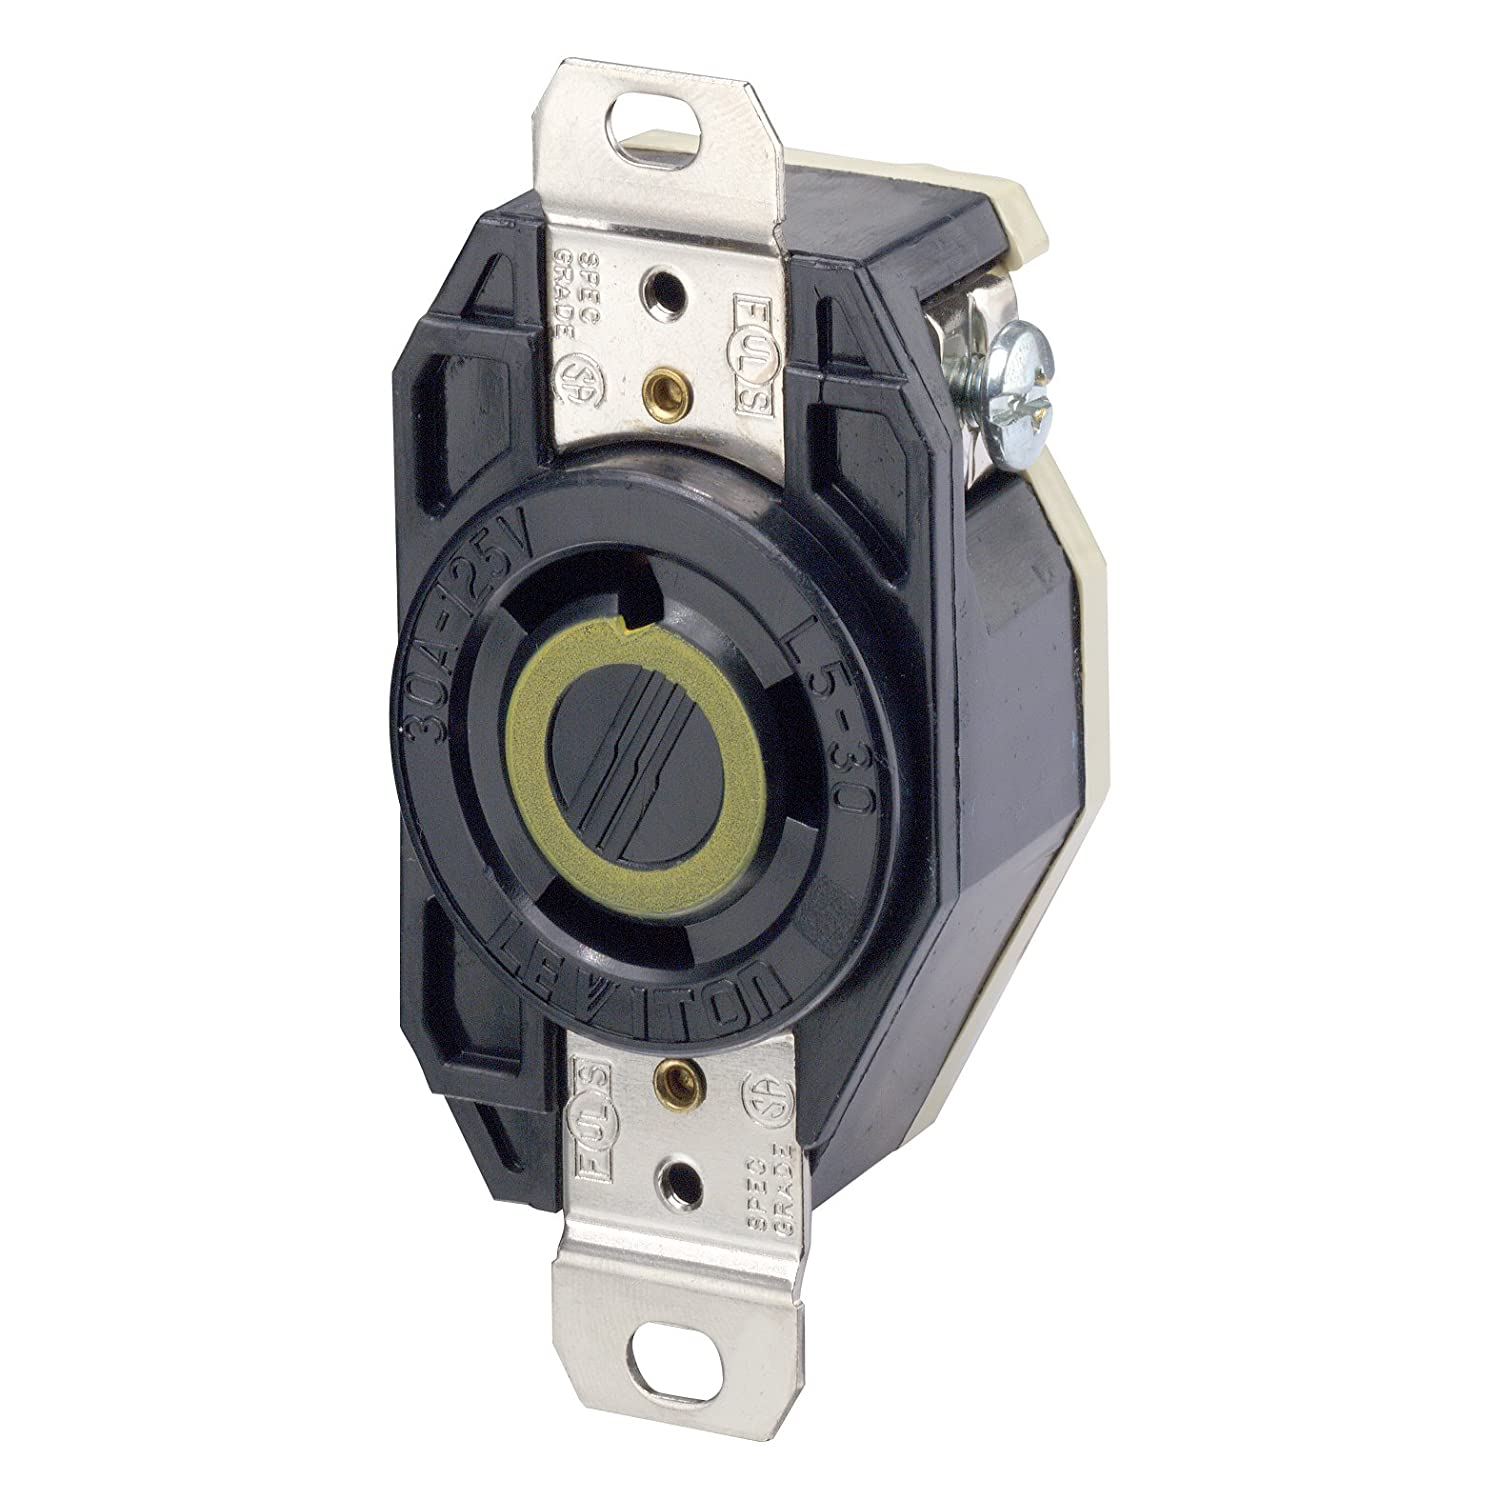 717vHr%2BMnaL._SL1500_ leviton 2610 30 amp, 125 volt, flush mounting locking receptacle NEMA 1-15 at bakdesigns.co